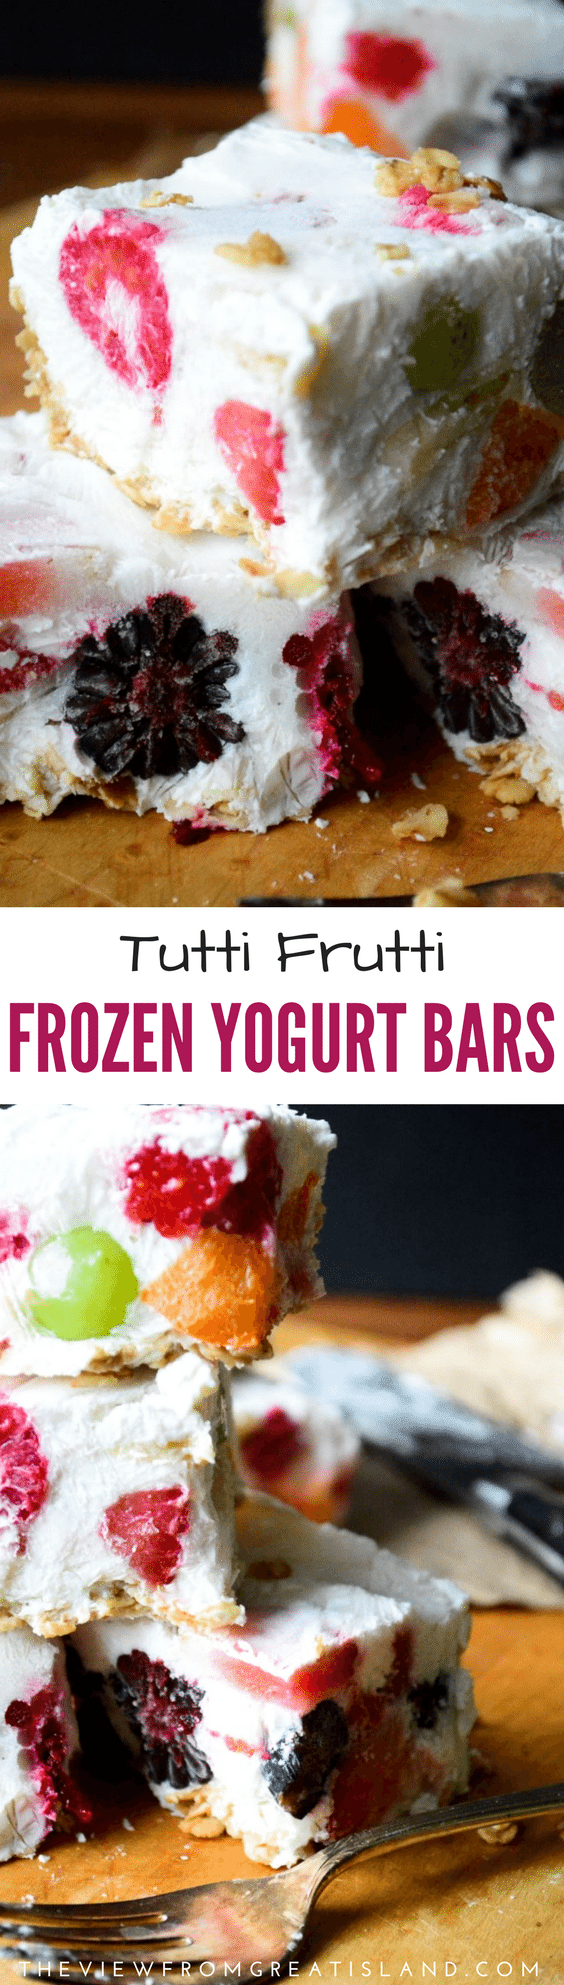 These Tutti Frutti Frozen Yogurt Bars are fun to make, and pretty, too. They make a nice healthy treat for kids of any age! #healthybreakfast #frozenyogurt #yogurtbars #fruit #healthy #breakfastbars #yogurt #healthybreakfastideas #kids #kidsbreakfast #healthysnack